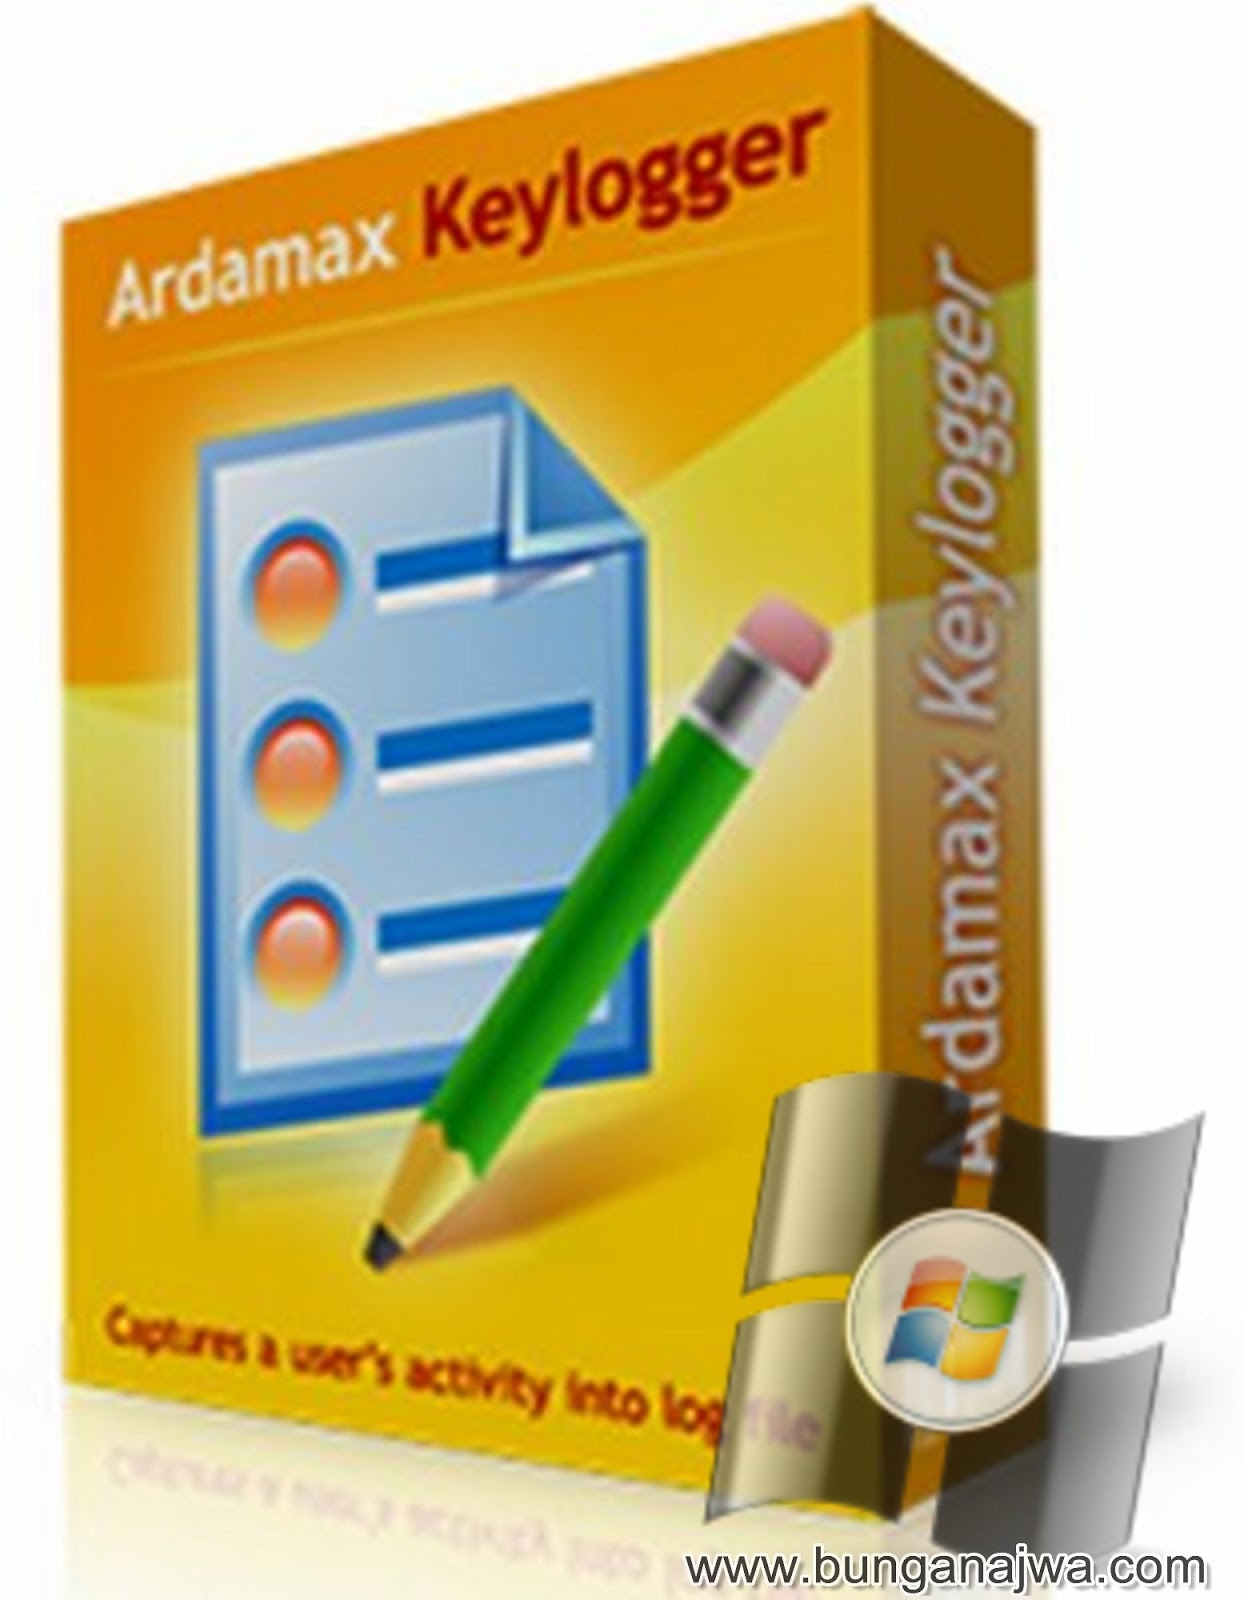 Ardamax keylogger 4.0 2 full version free serial